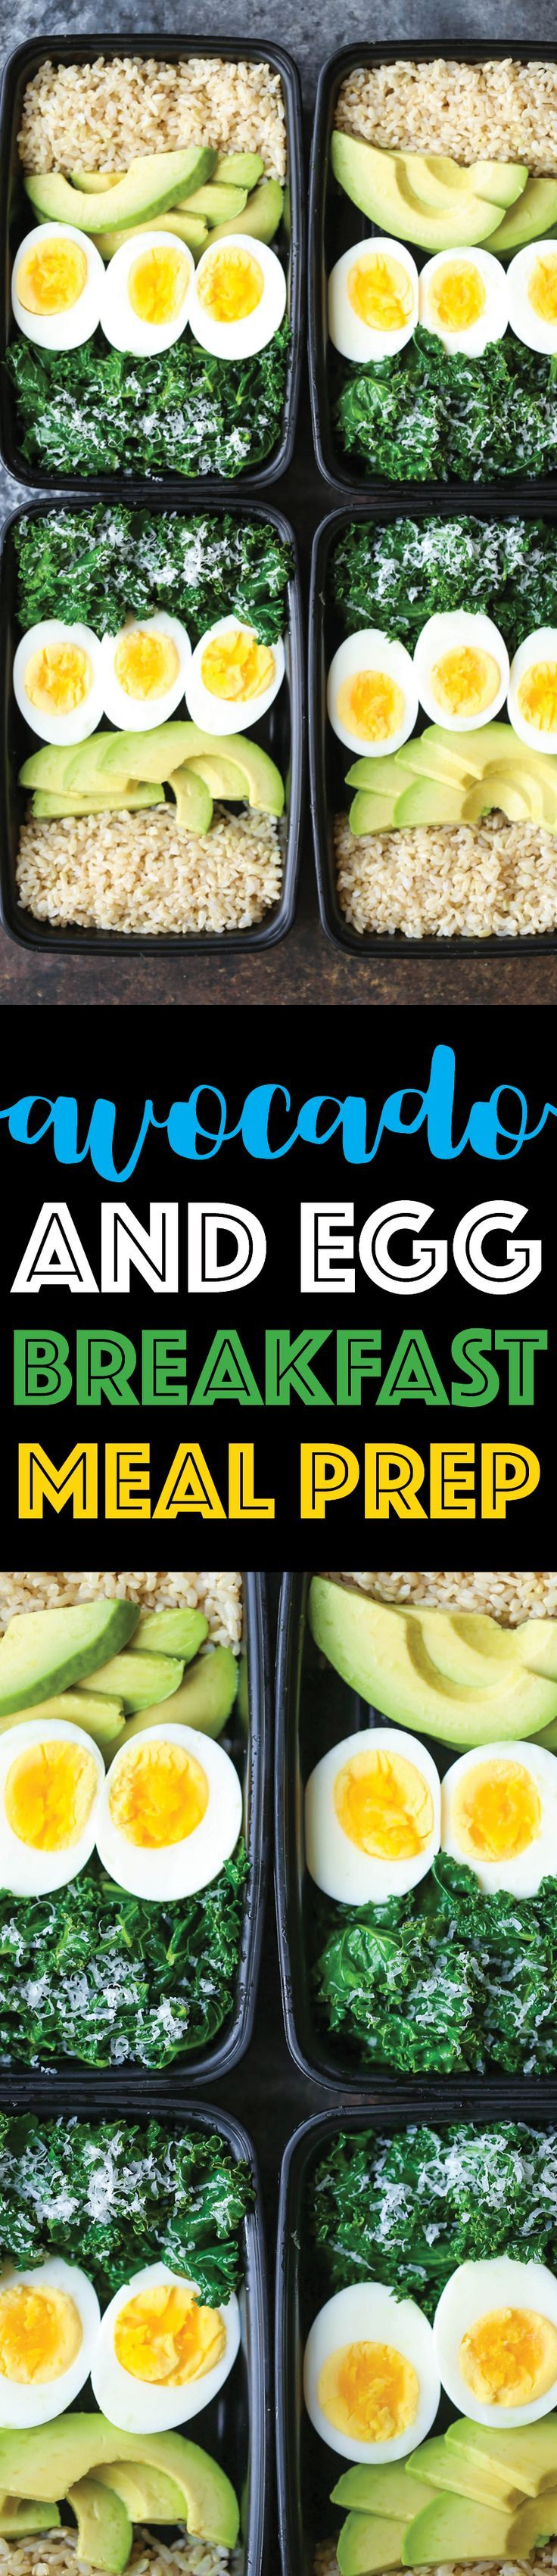 Avocado and Egg Breakfast Meal Prep - Jump start your mornings with the healthiest, filling breakfast ever! Loaded with brown rice, avocado, eggs and kale.